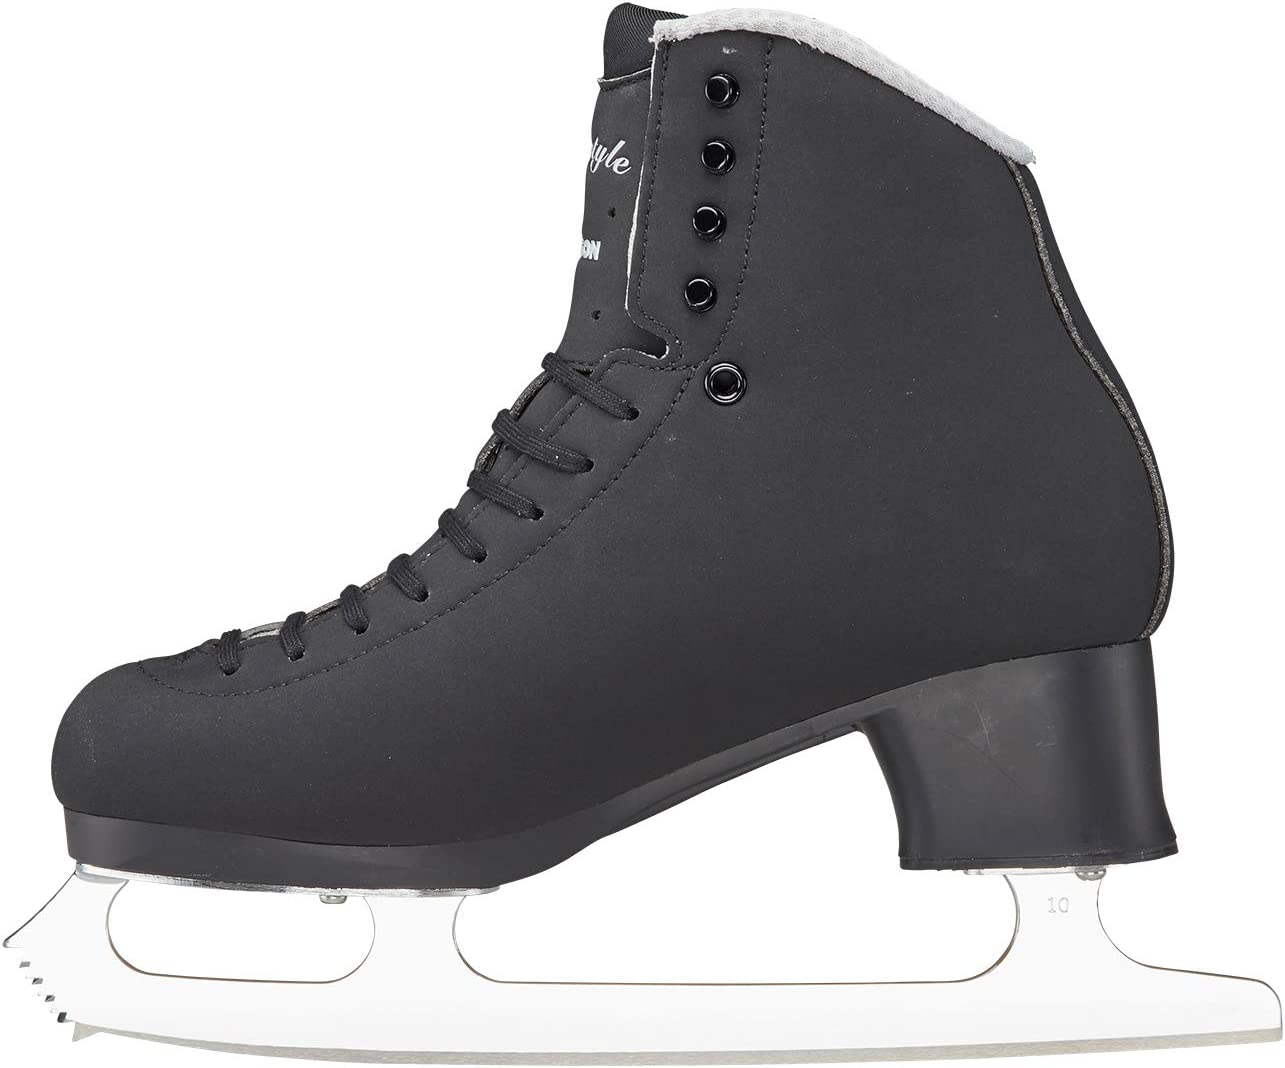 Men JUST LAUNCHED 2019 Jackson Ultima Fusion Elle and Freestyle Figure Ice Skates for Women Girls and Boys